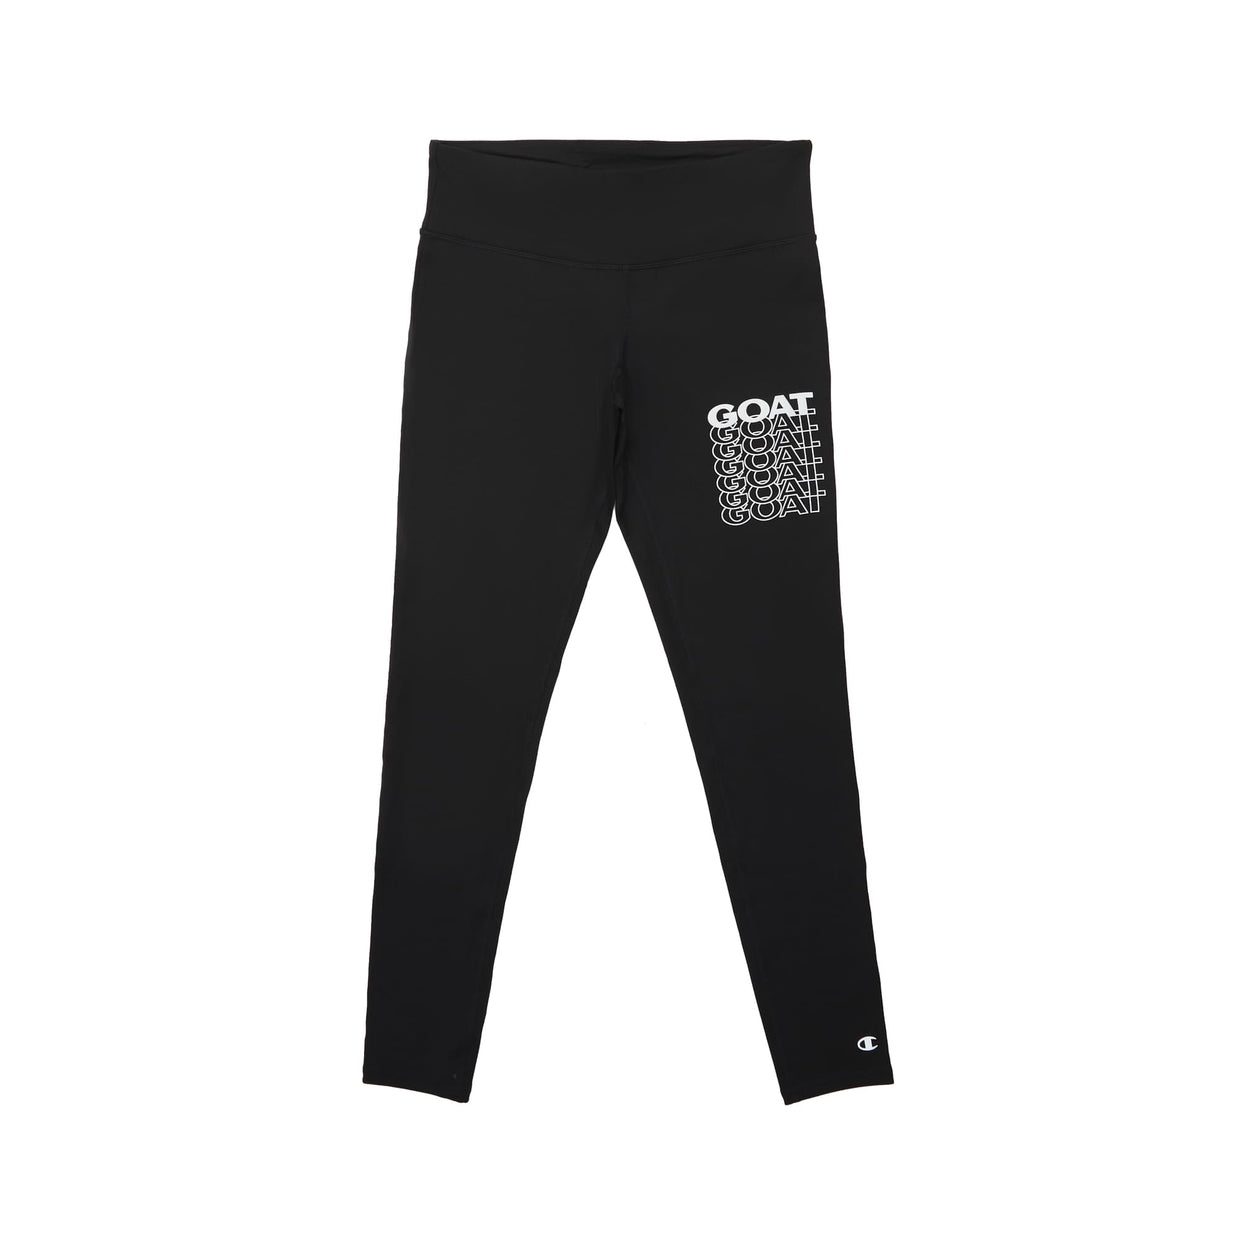 Erika Costell x Champion GOAT Women's Leggings